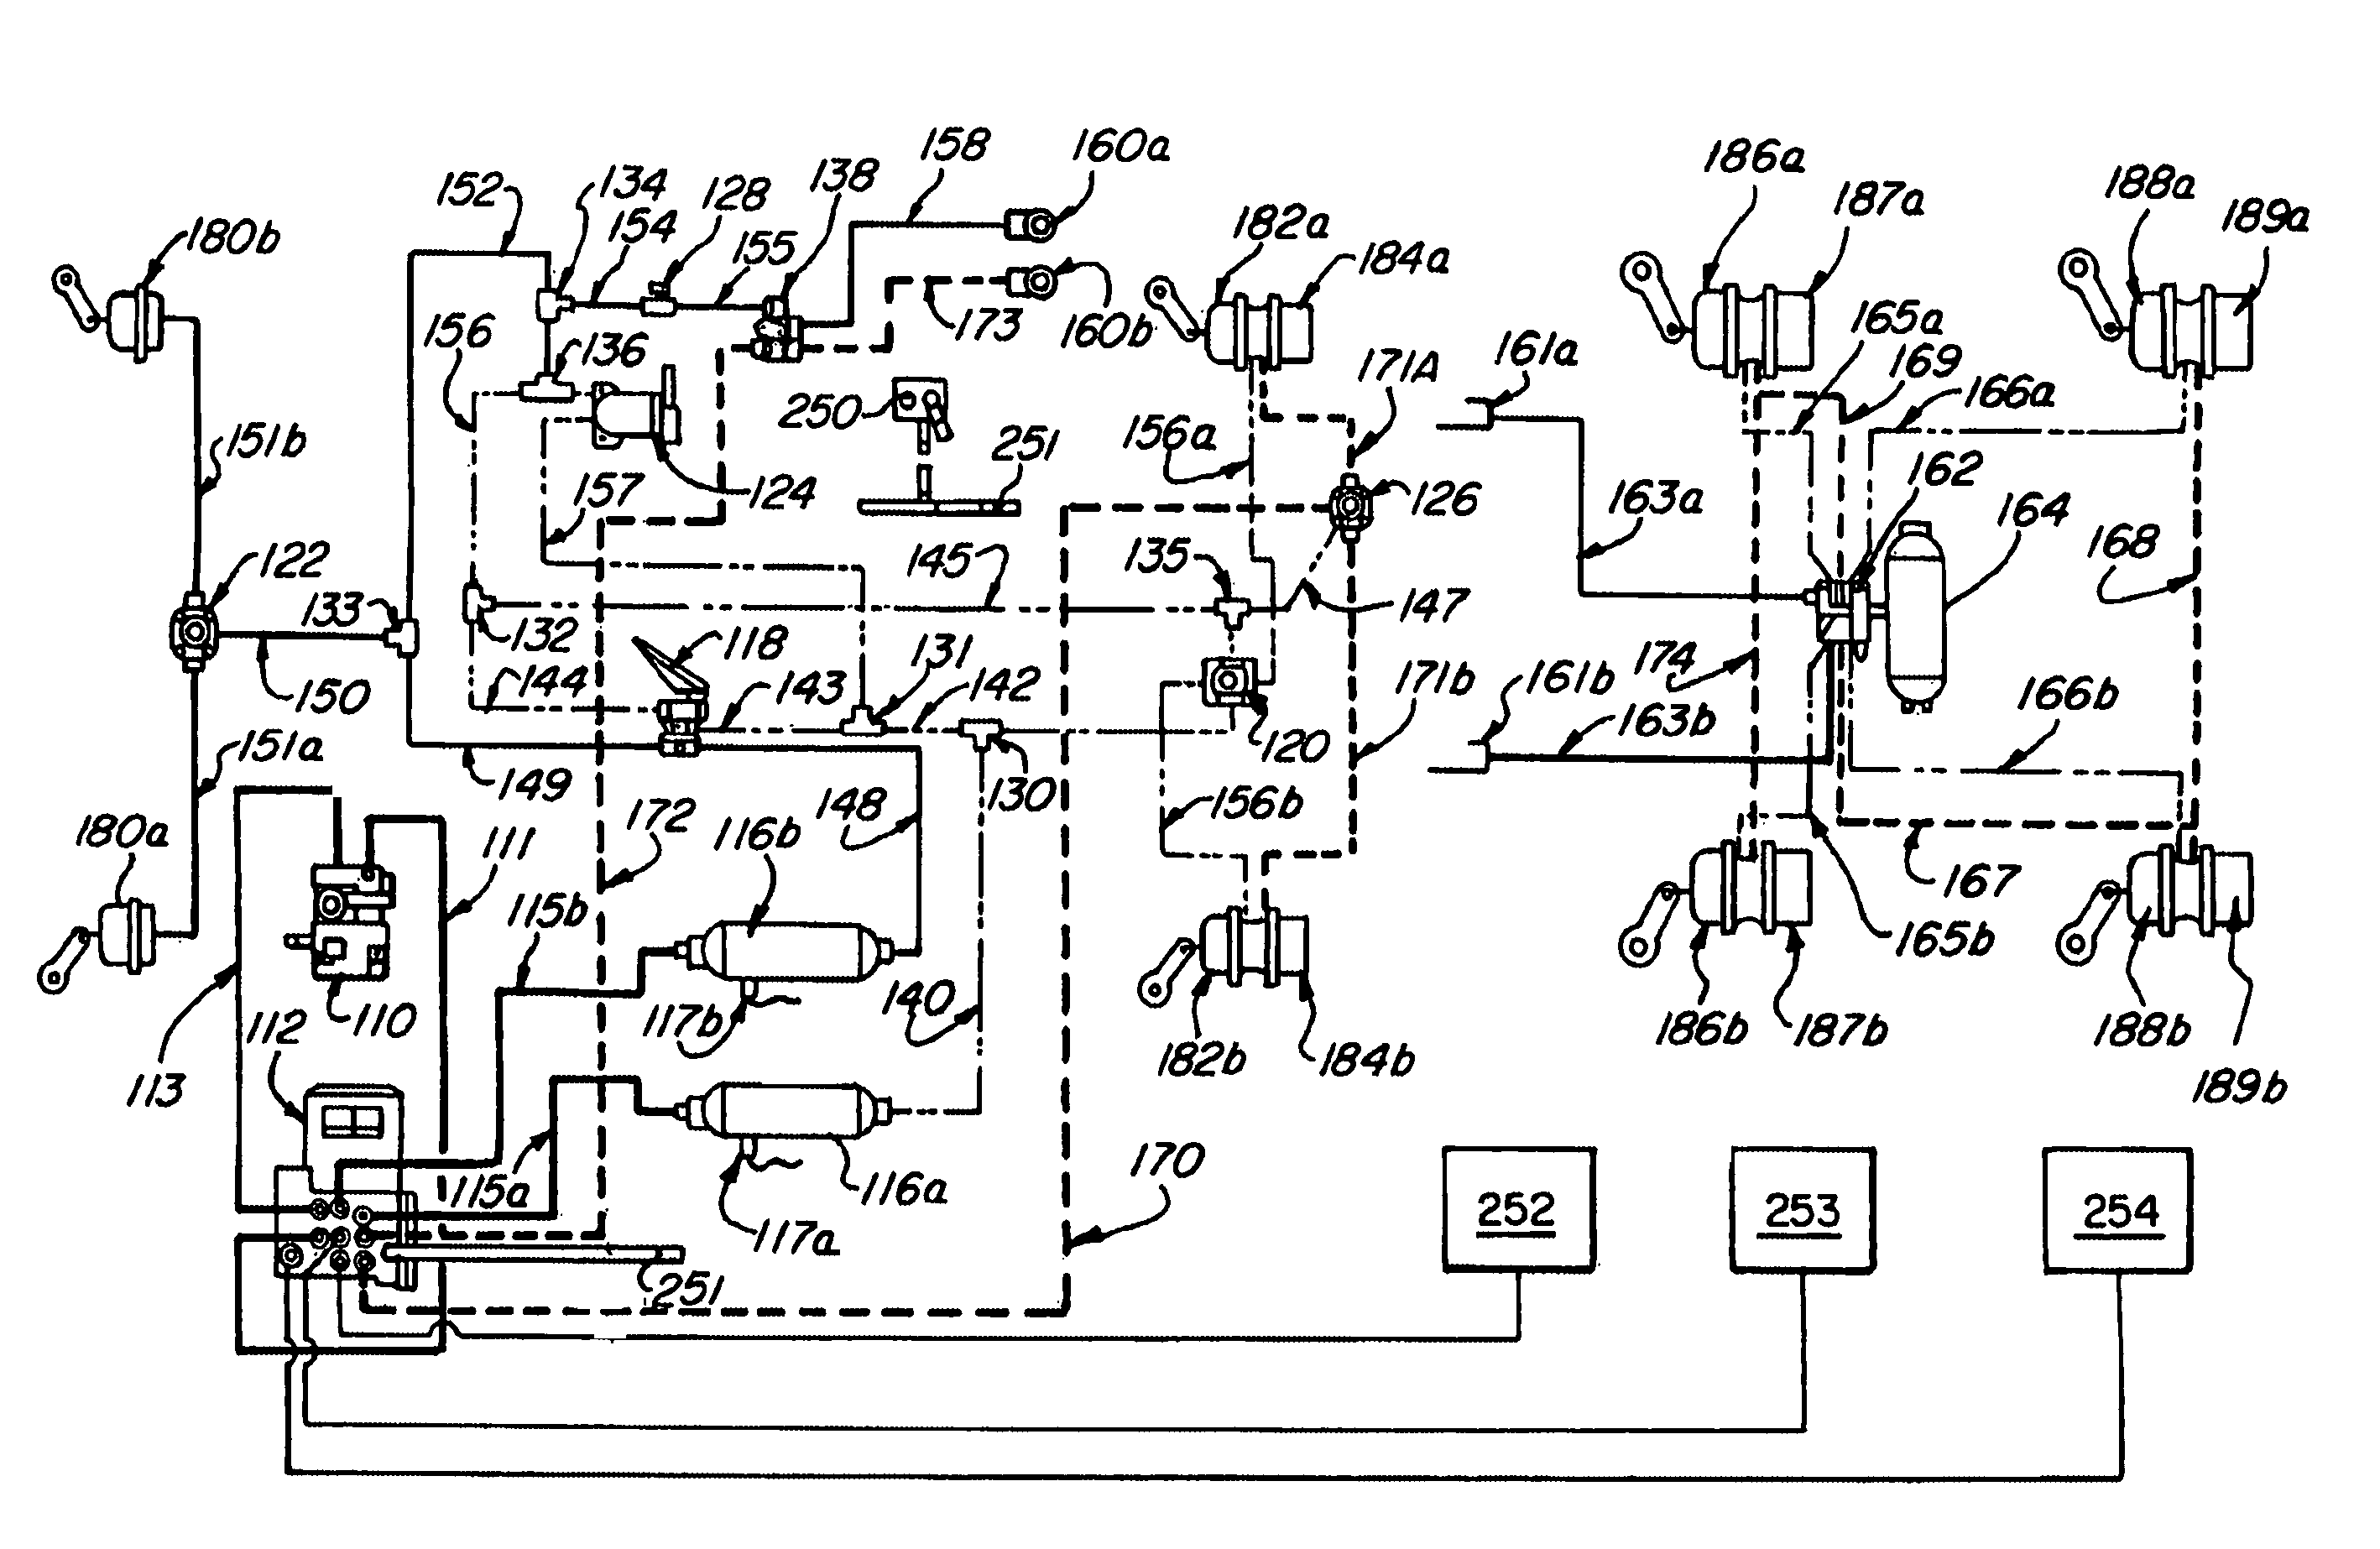 semi truck air line diagram  semi  free engine image for